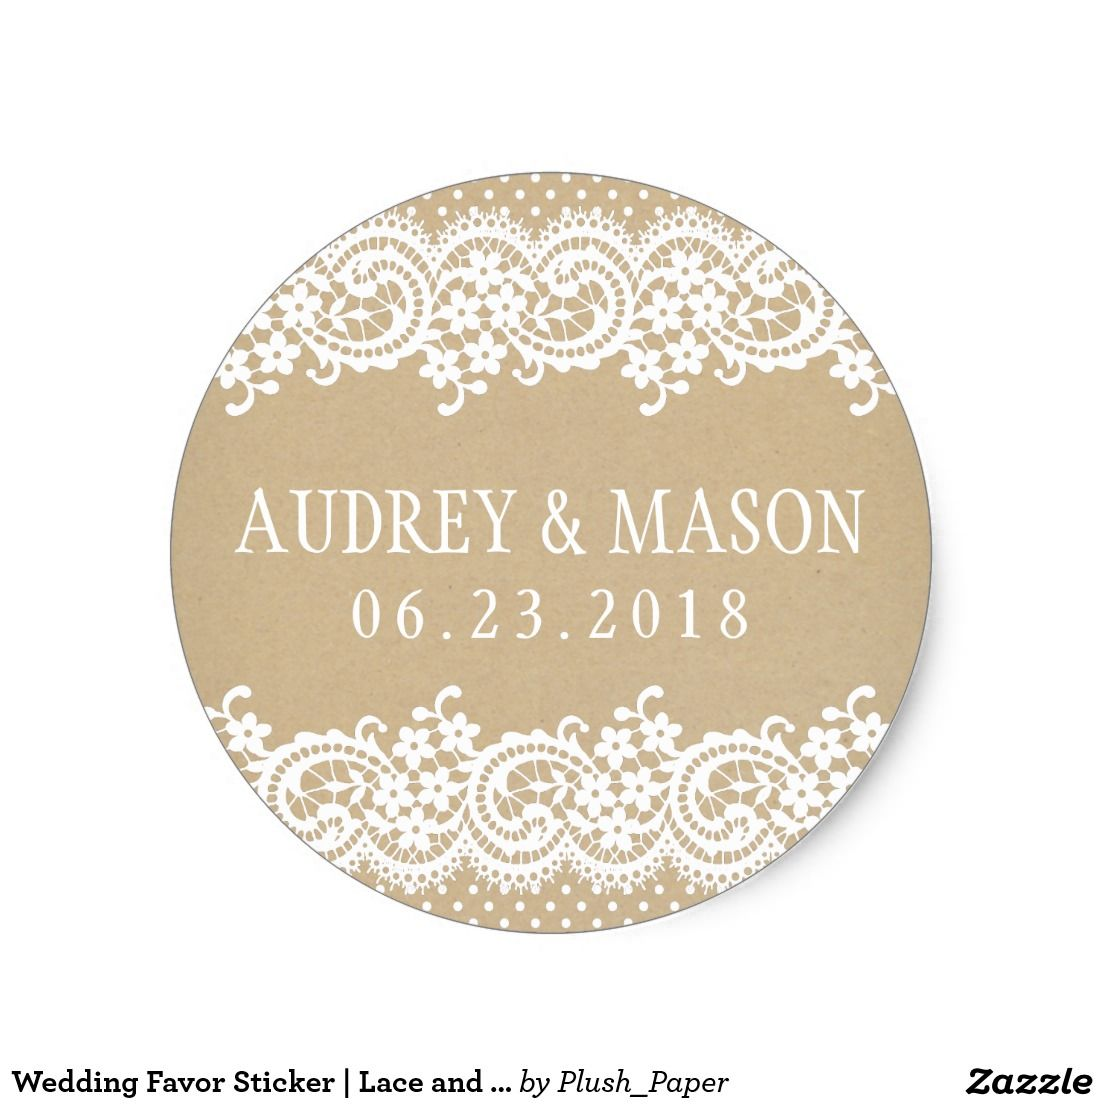 Wedding Monogram Sticker | Lace and Kraft | Wedding monograms ...